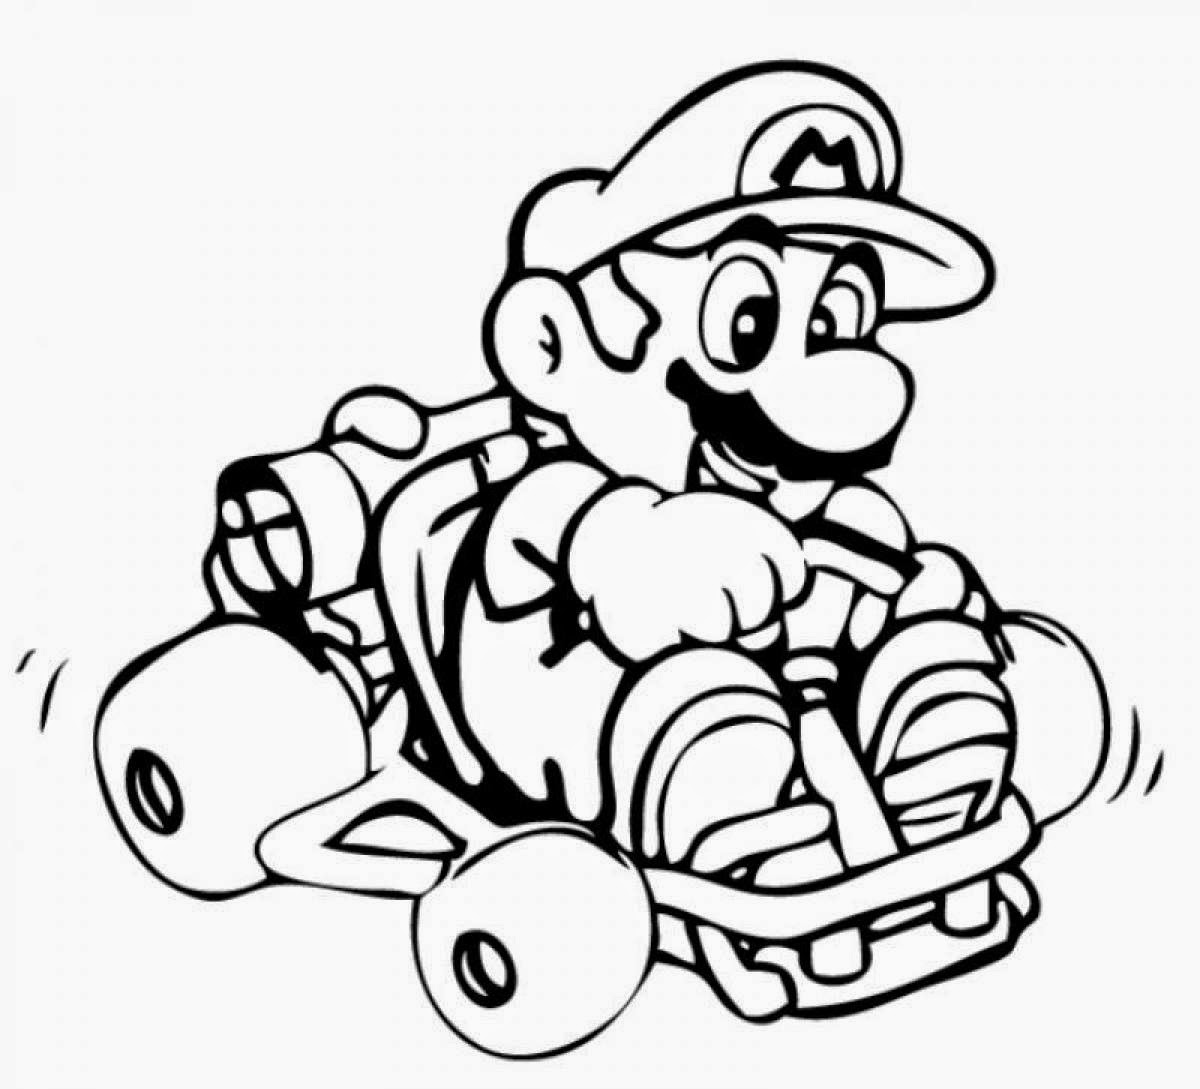 coloring mario kart go kart coloring pages coloring home mario coloring kart